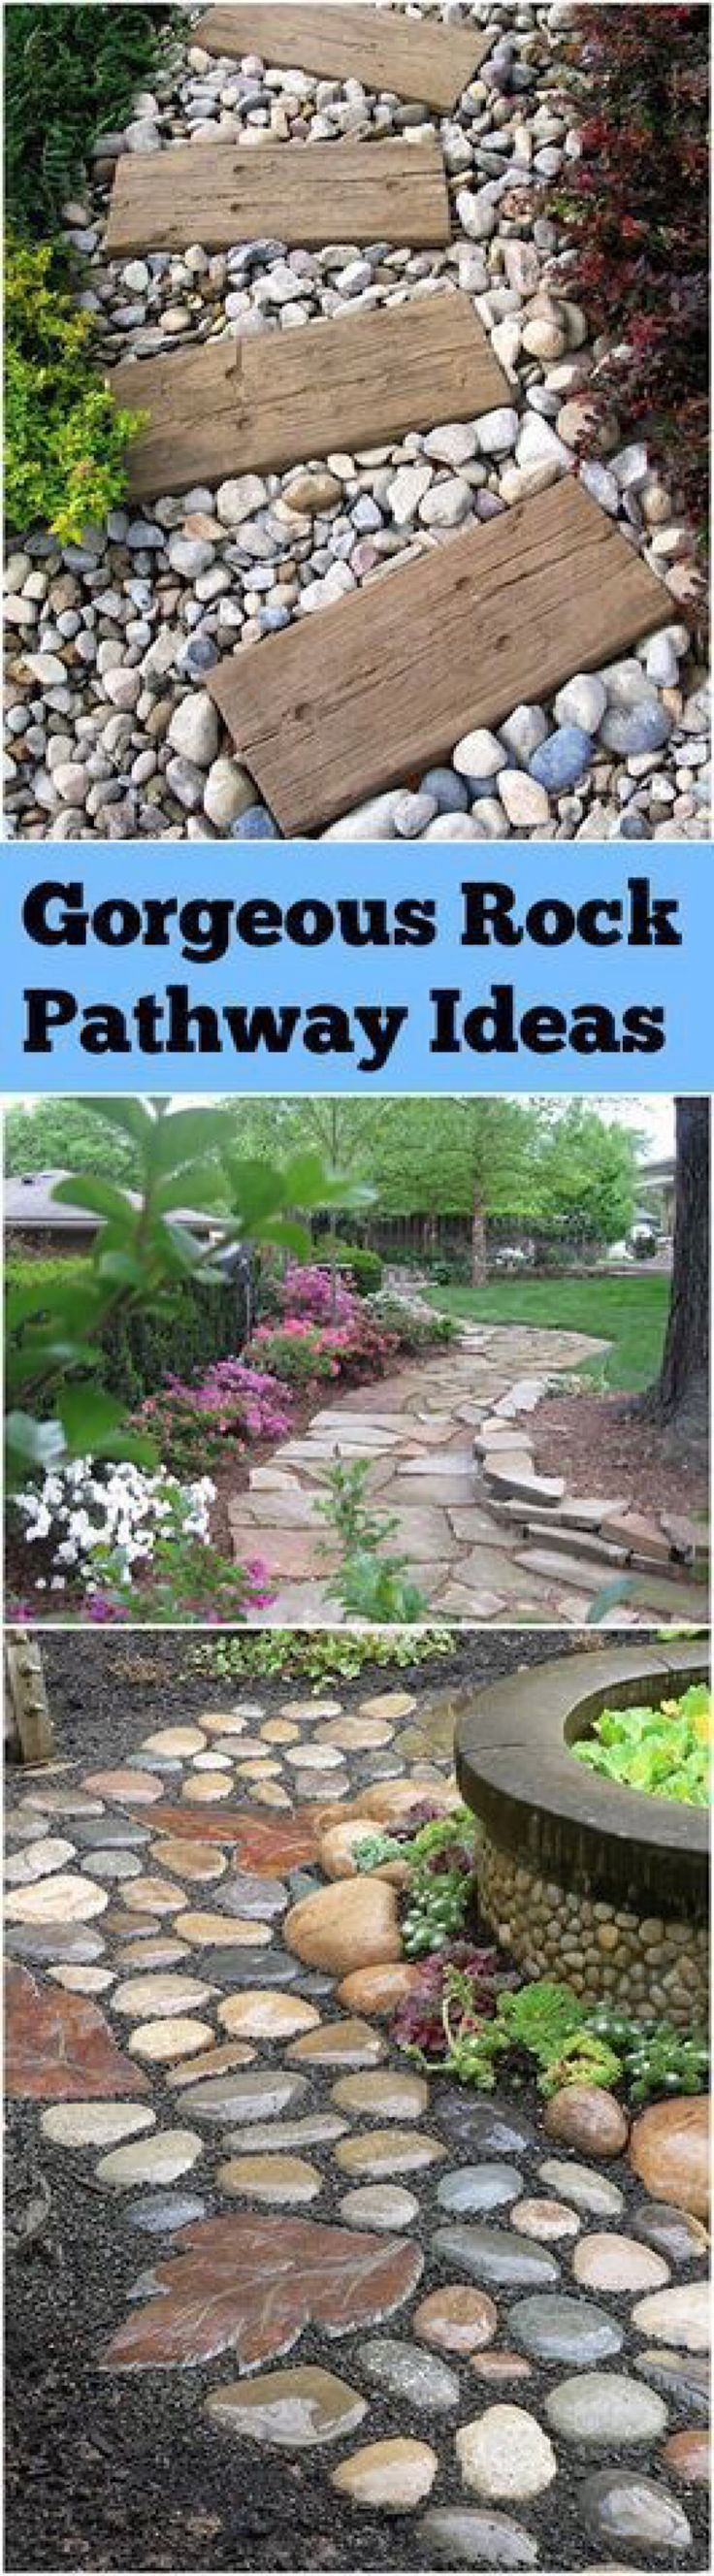 Whether it's to add some class to your lawn, keep animals out of the plants, or create a visual reminder for your kids to stay out of your flowerbeds, a garden and lawn edge can be a great addition to your yard. Here are some fun and creative ways that you can get that edging […]